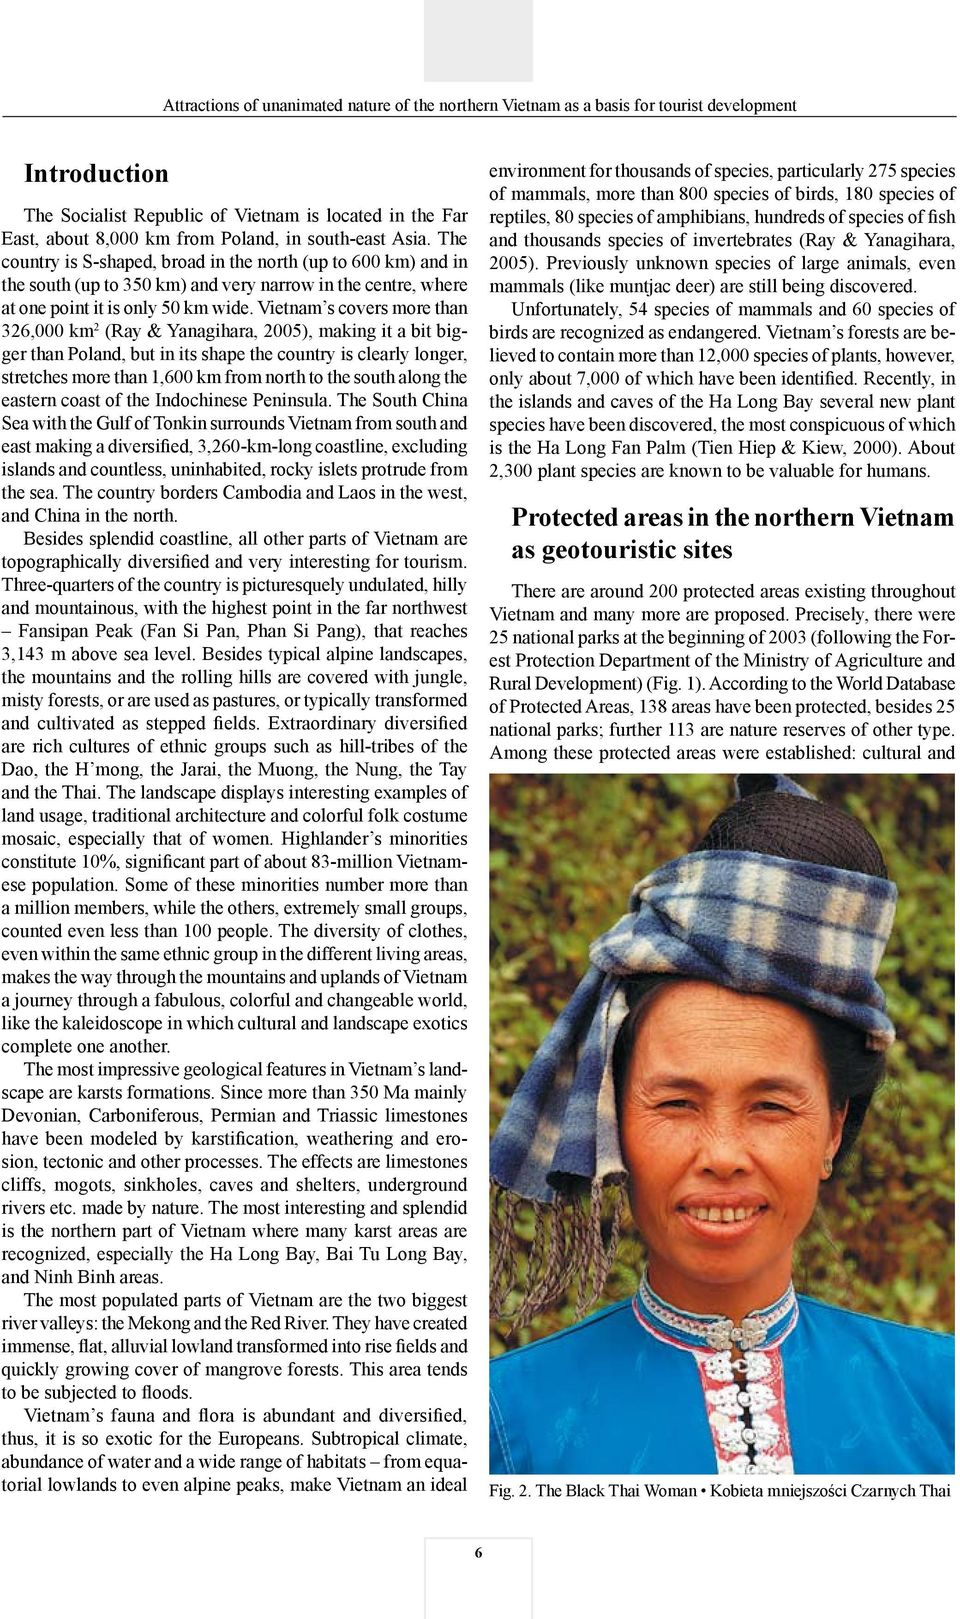 Vietnam s covers more than 326,000 km 2 (Ray & Yanagihara, 2005), making it a bit bigger than Poland, but in its shape the country is clearly longer, stretches more than 1,600 km from north to the